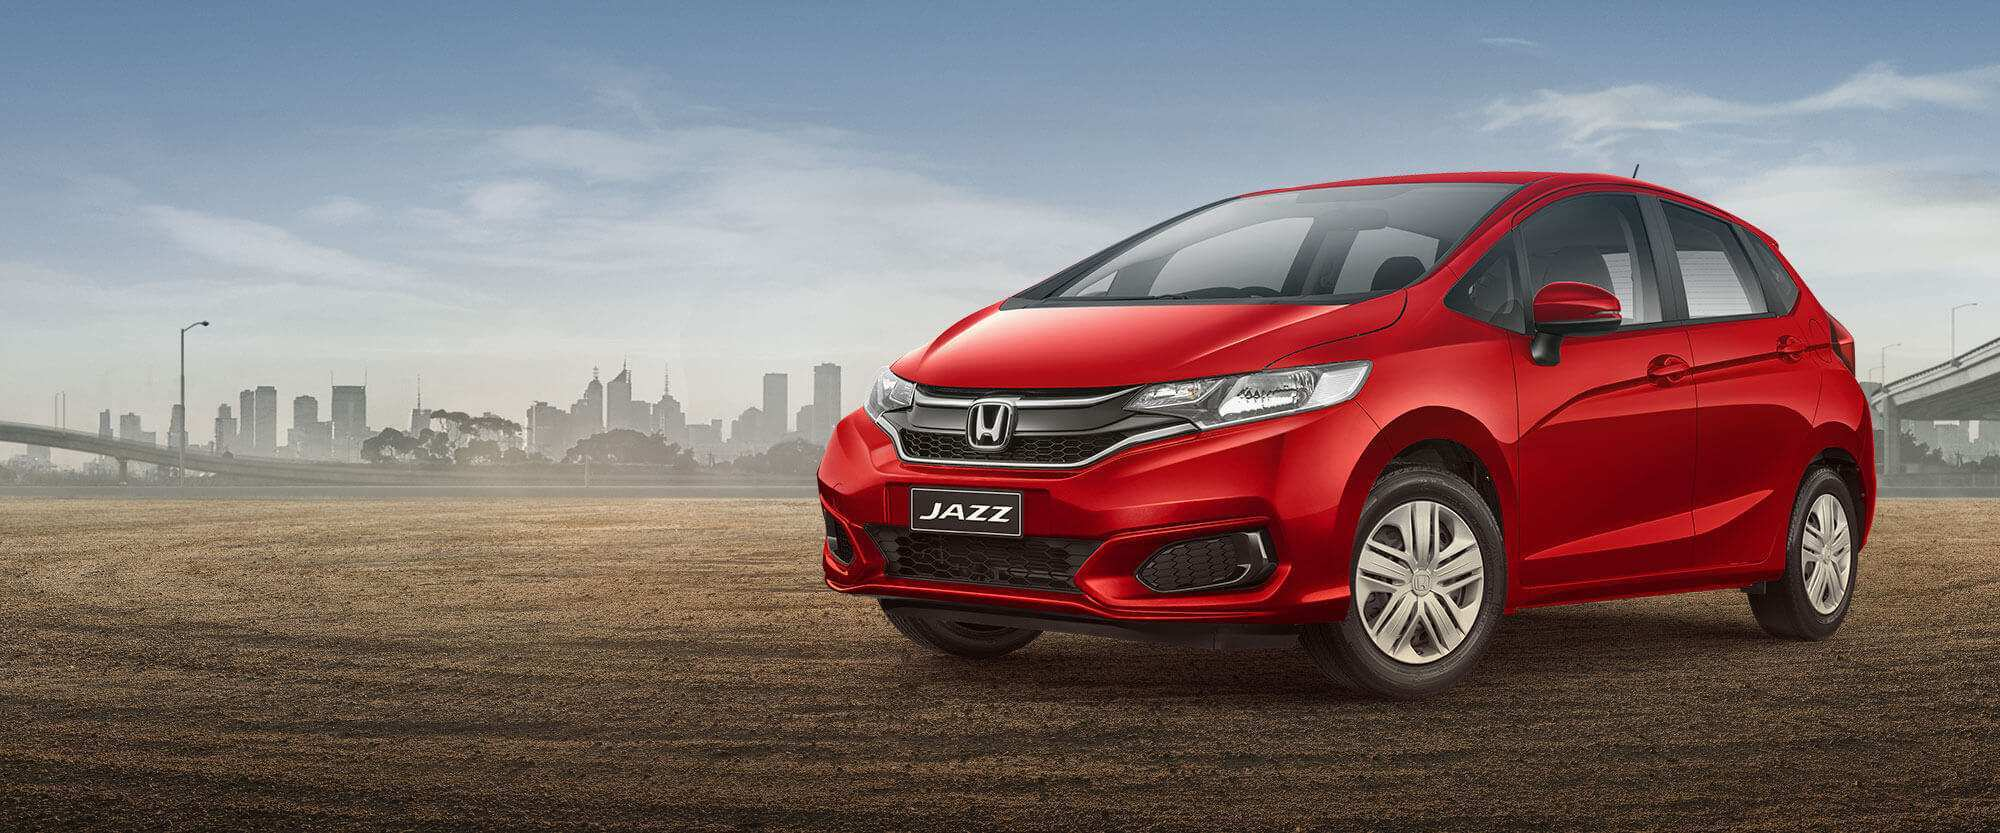 98 Great Honda Jazz 2020 Australia New Review with Honda Jazz 2020 Australia